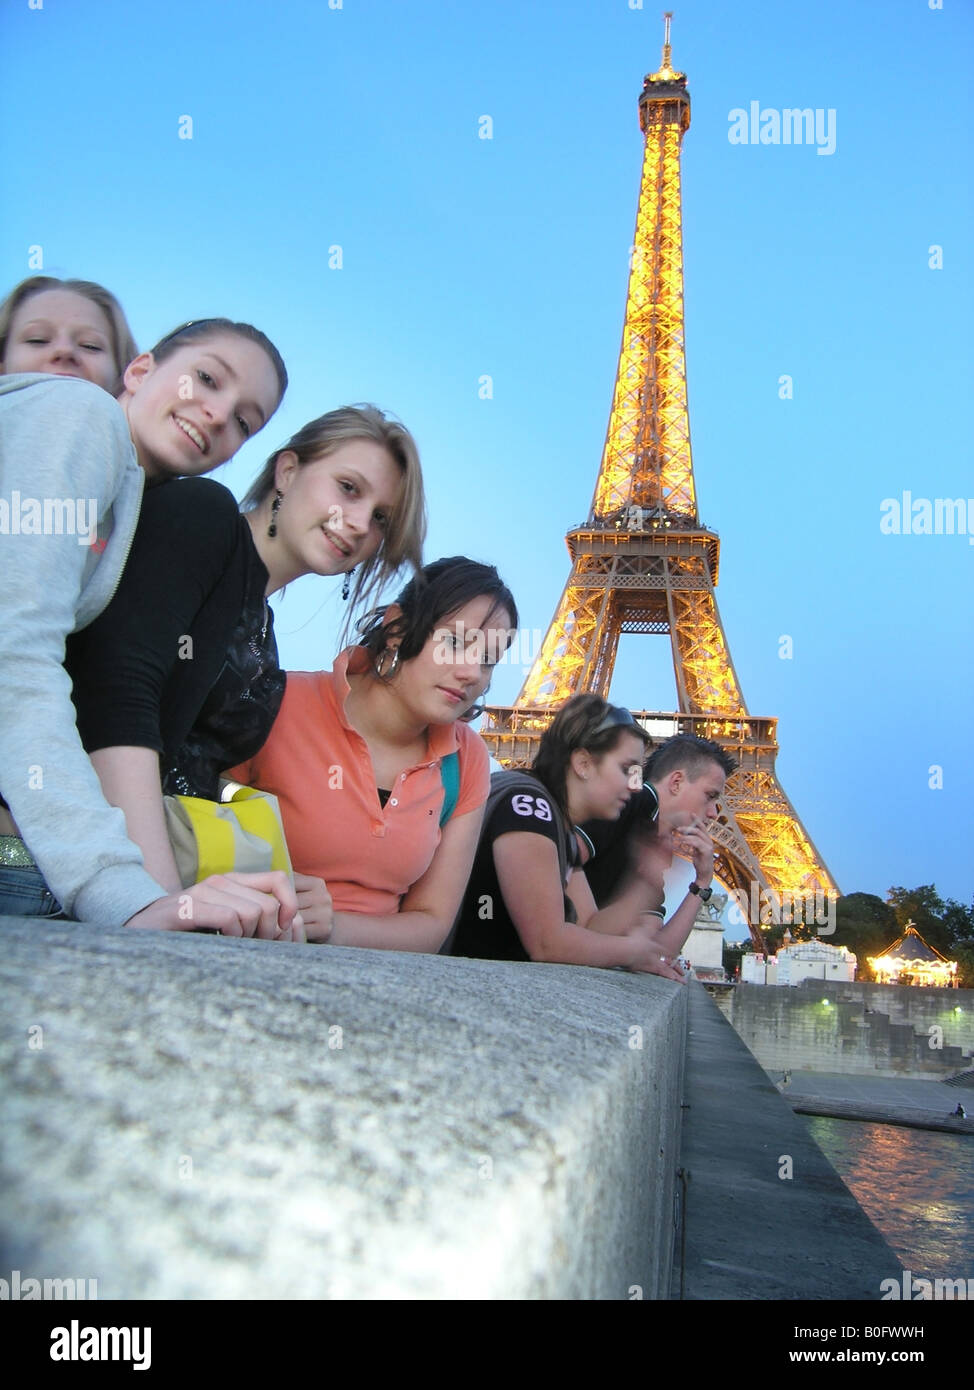 Six students posing on Pont D'iena with Eiffel Tower behind them at dusk Paris France - Stock Image